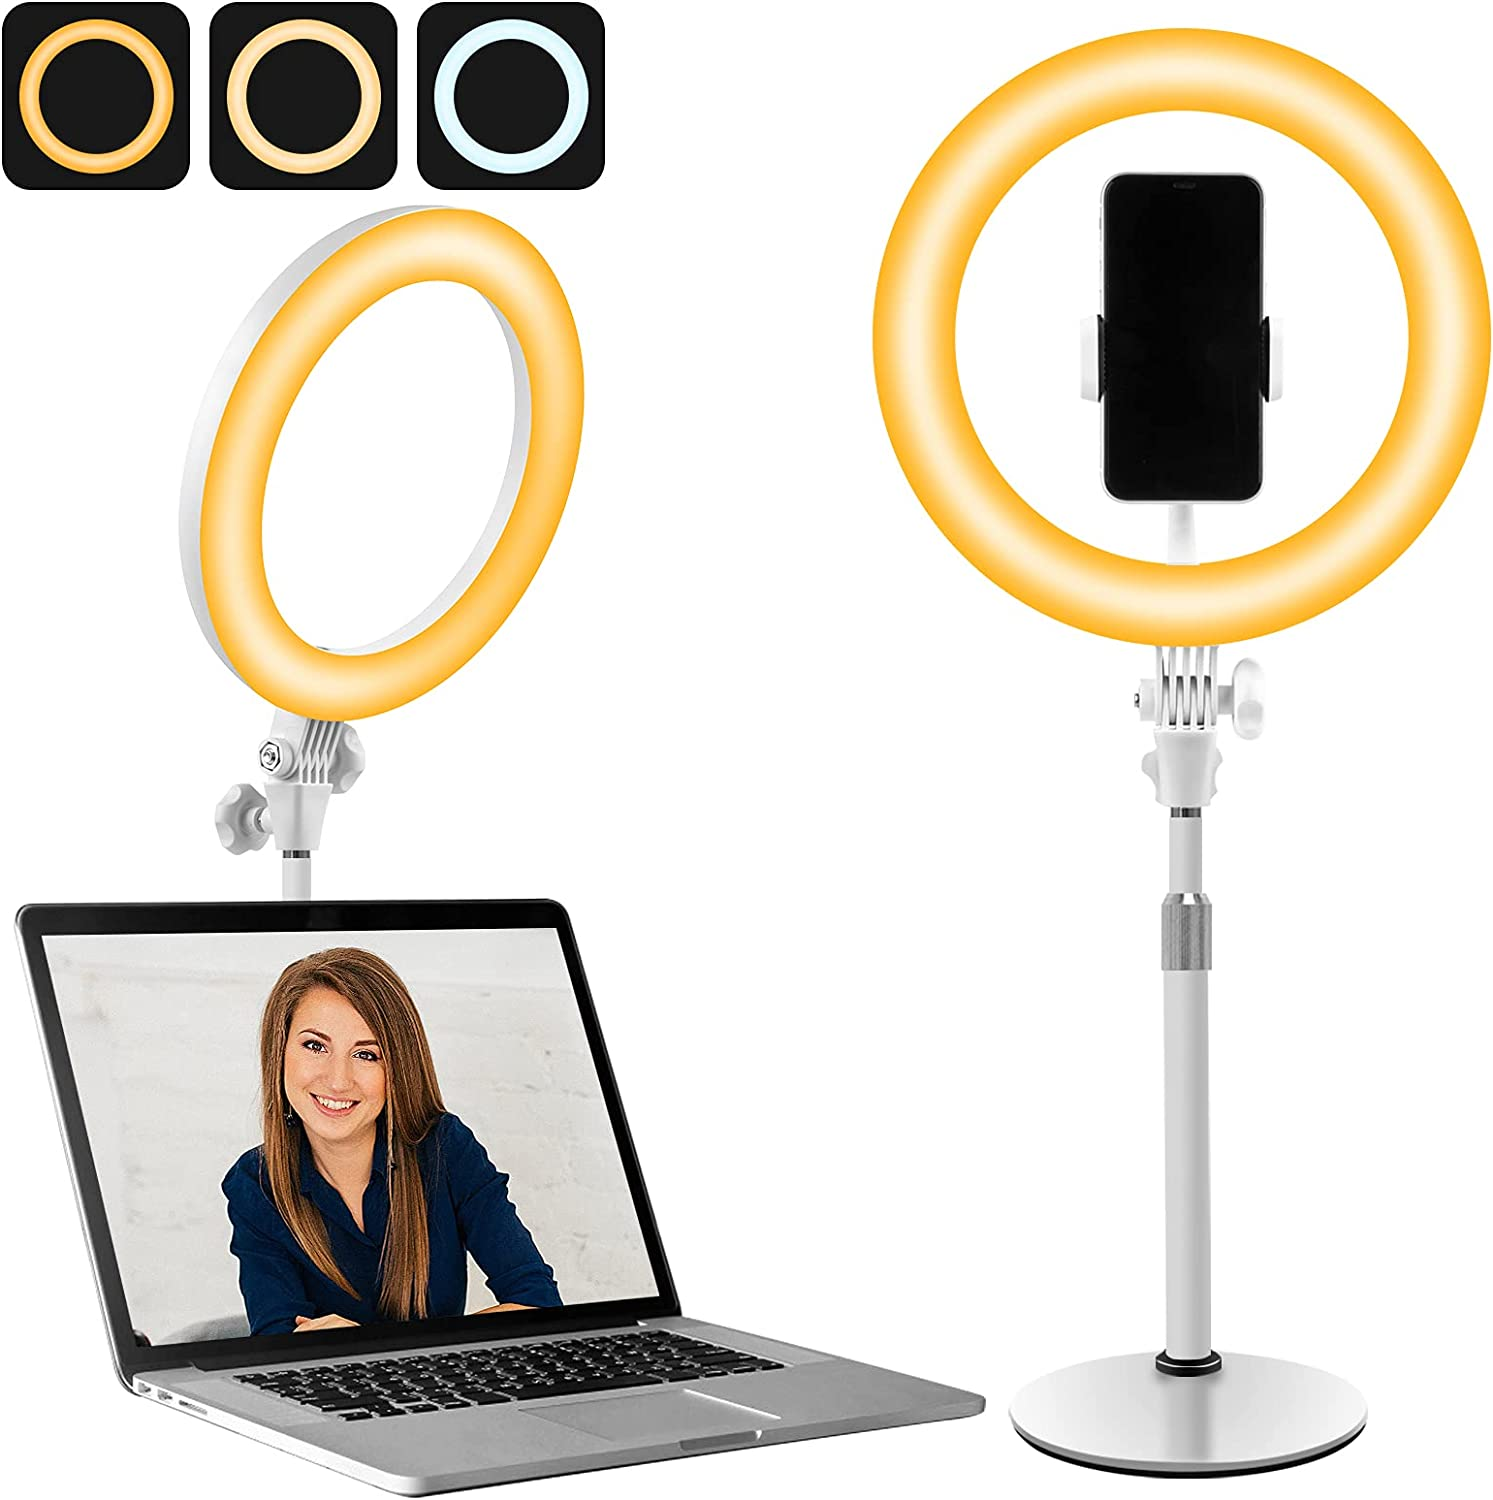 10 Inch LED Ring Light with Stand for Computer   Video Conference Zoom Lighting for Webcam   Camera Selfie Ringlight for Makeup, Conferencing, TikTok & YouTube Live Streaming, 3 Colors x 10 Bris